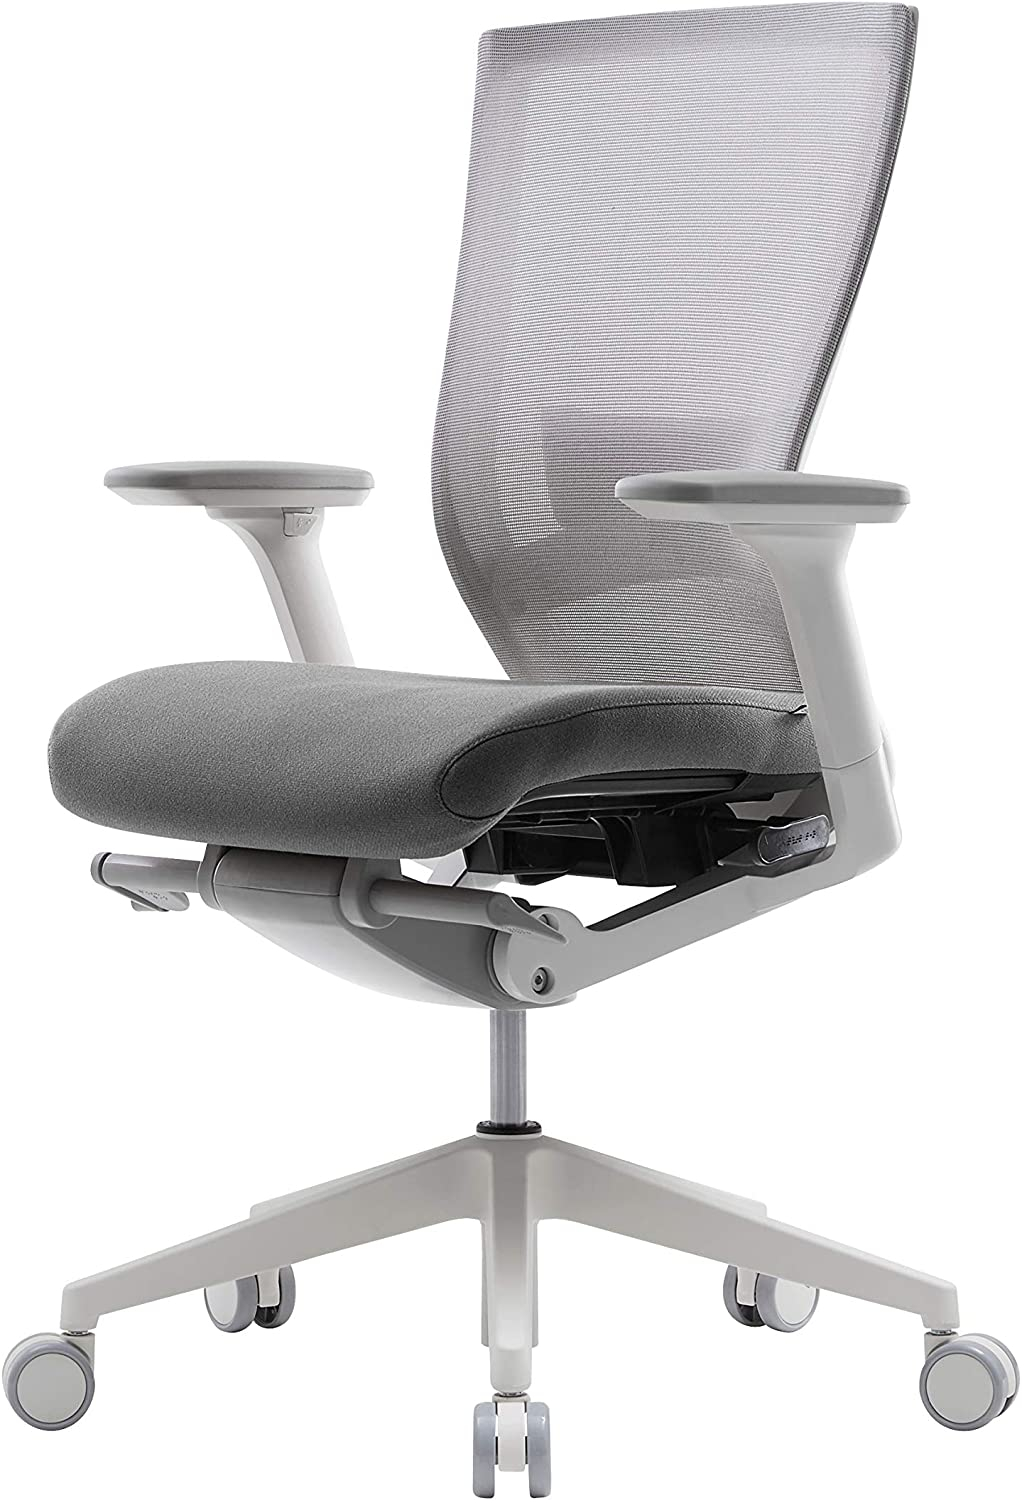 Highly Adjustable Ergonomic Office Chair